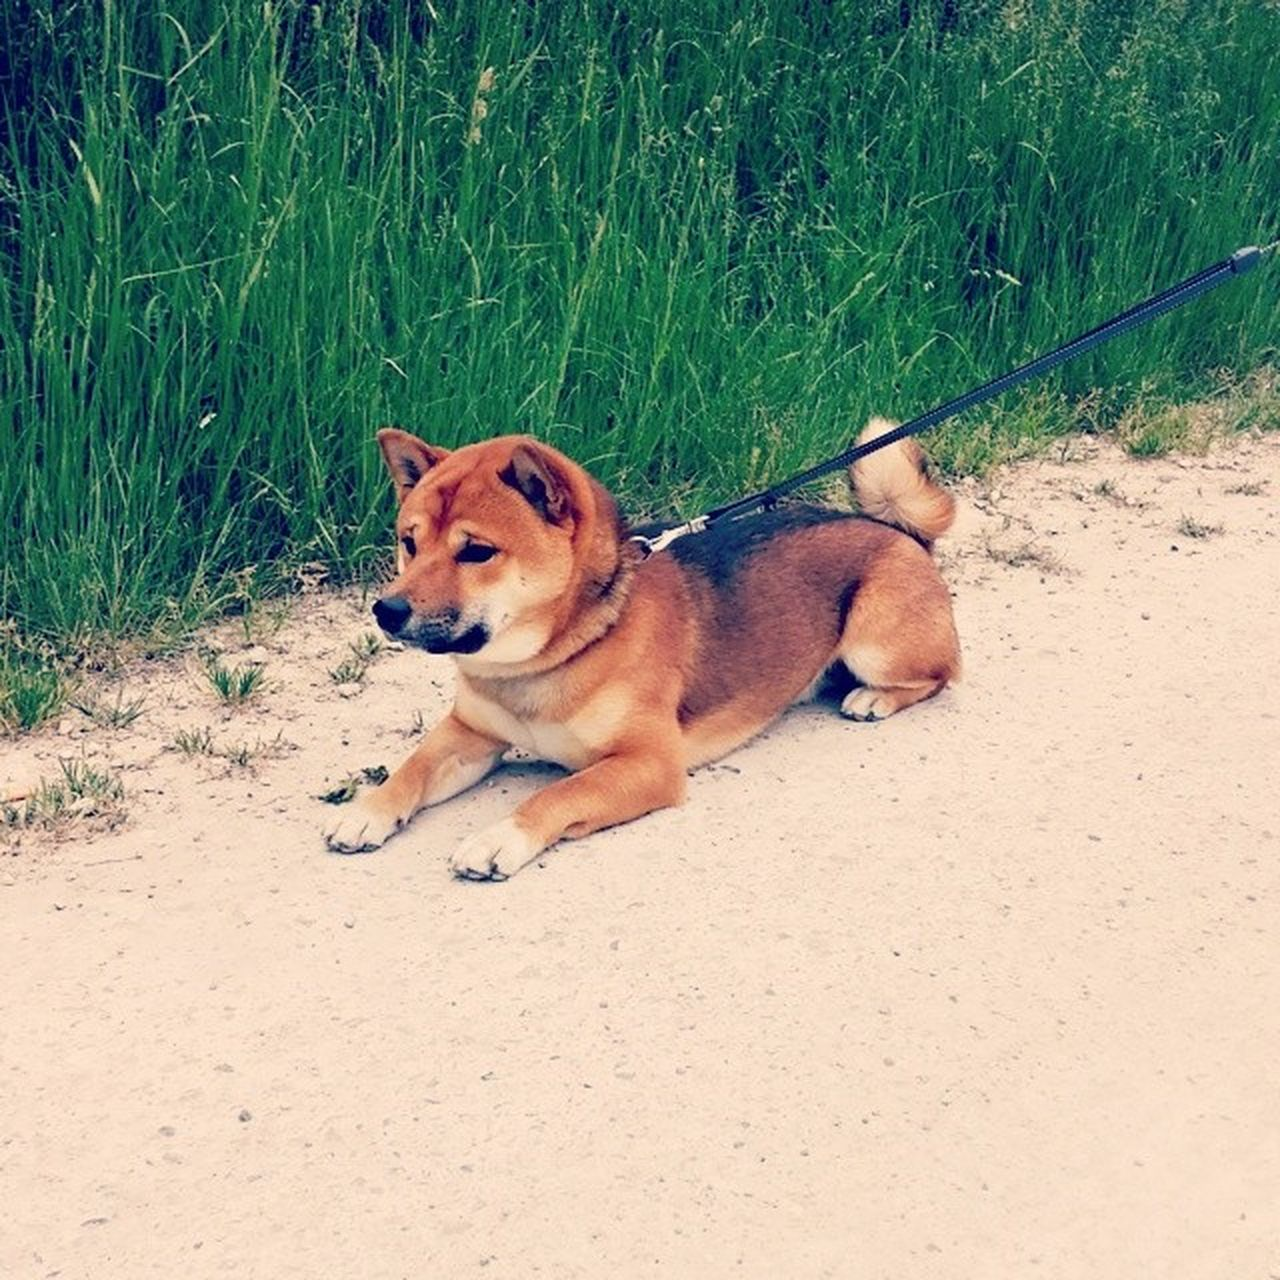 dog, animal themes, pets, domestic animals, mammal, one animal, grass, day, outdoors, no people, nature